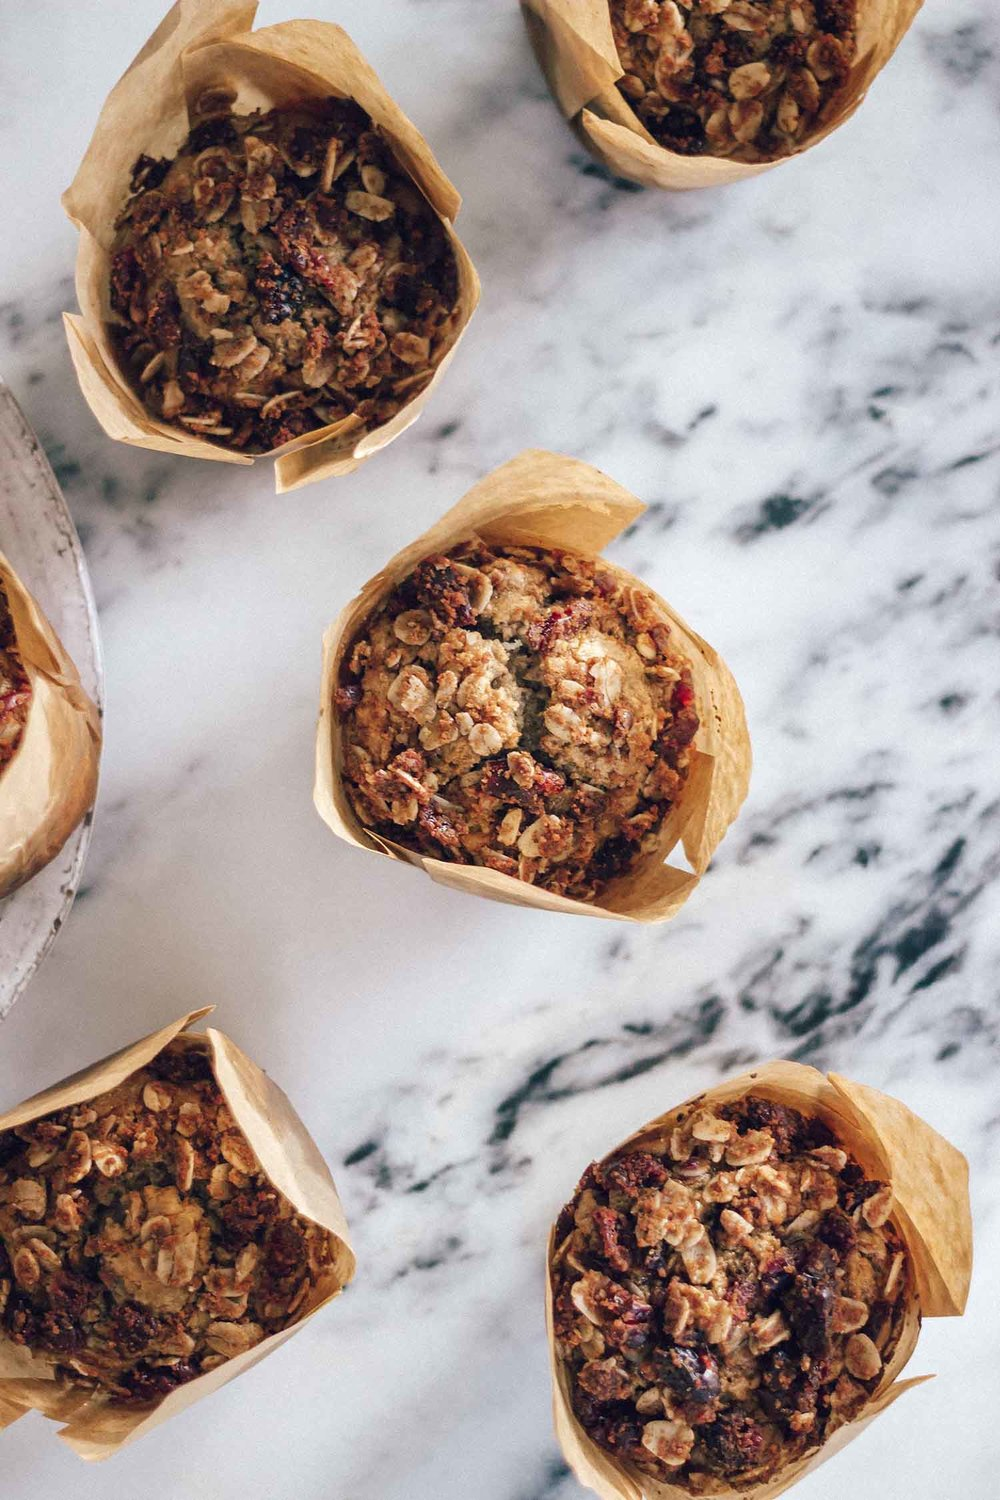 Seasonal Oatmeal Cranberry Muffins With Oatmeal Crumble Topping (Naturally Gluten Free)